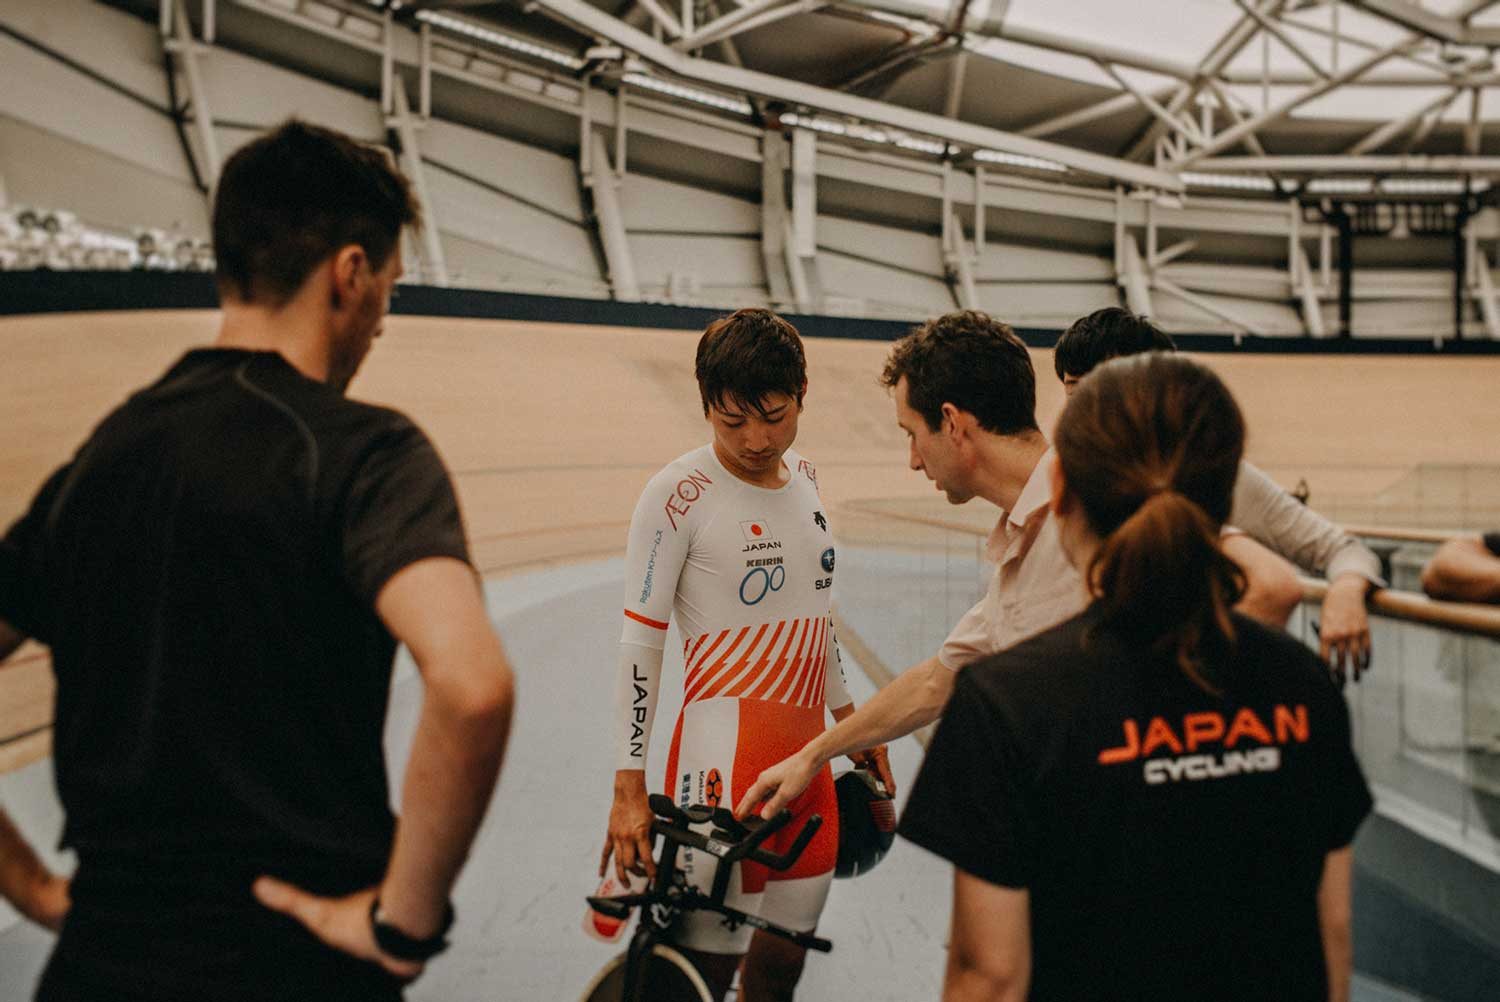 Japanese cyclist discusses performance with coaches after training in velodrome